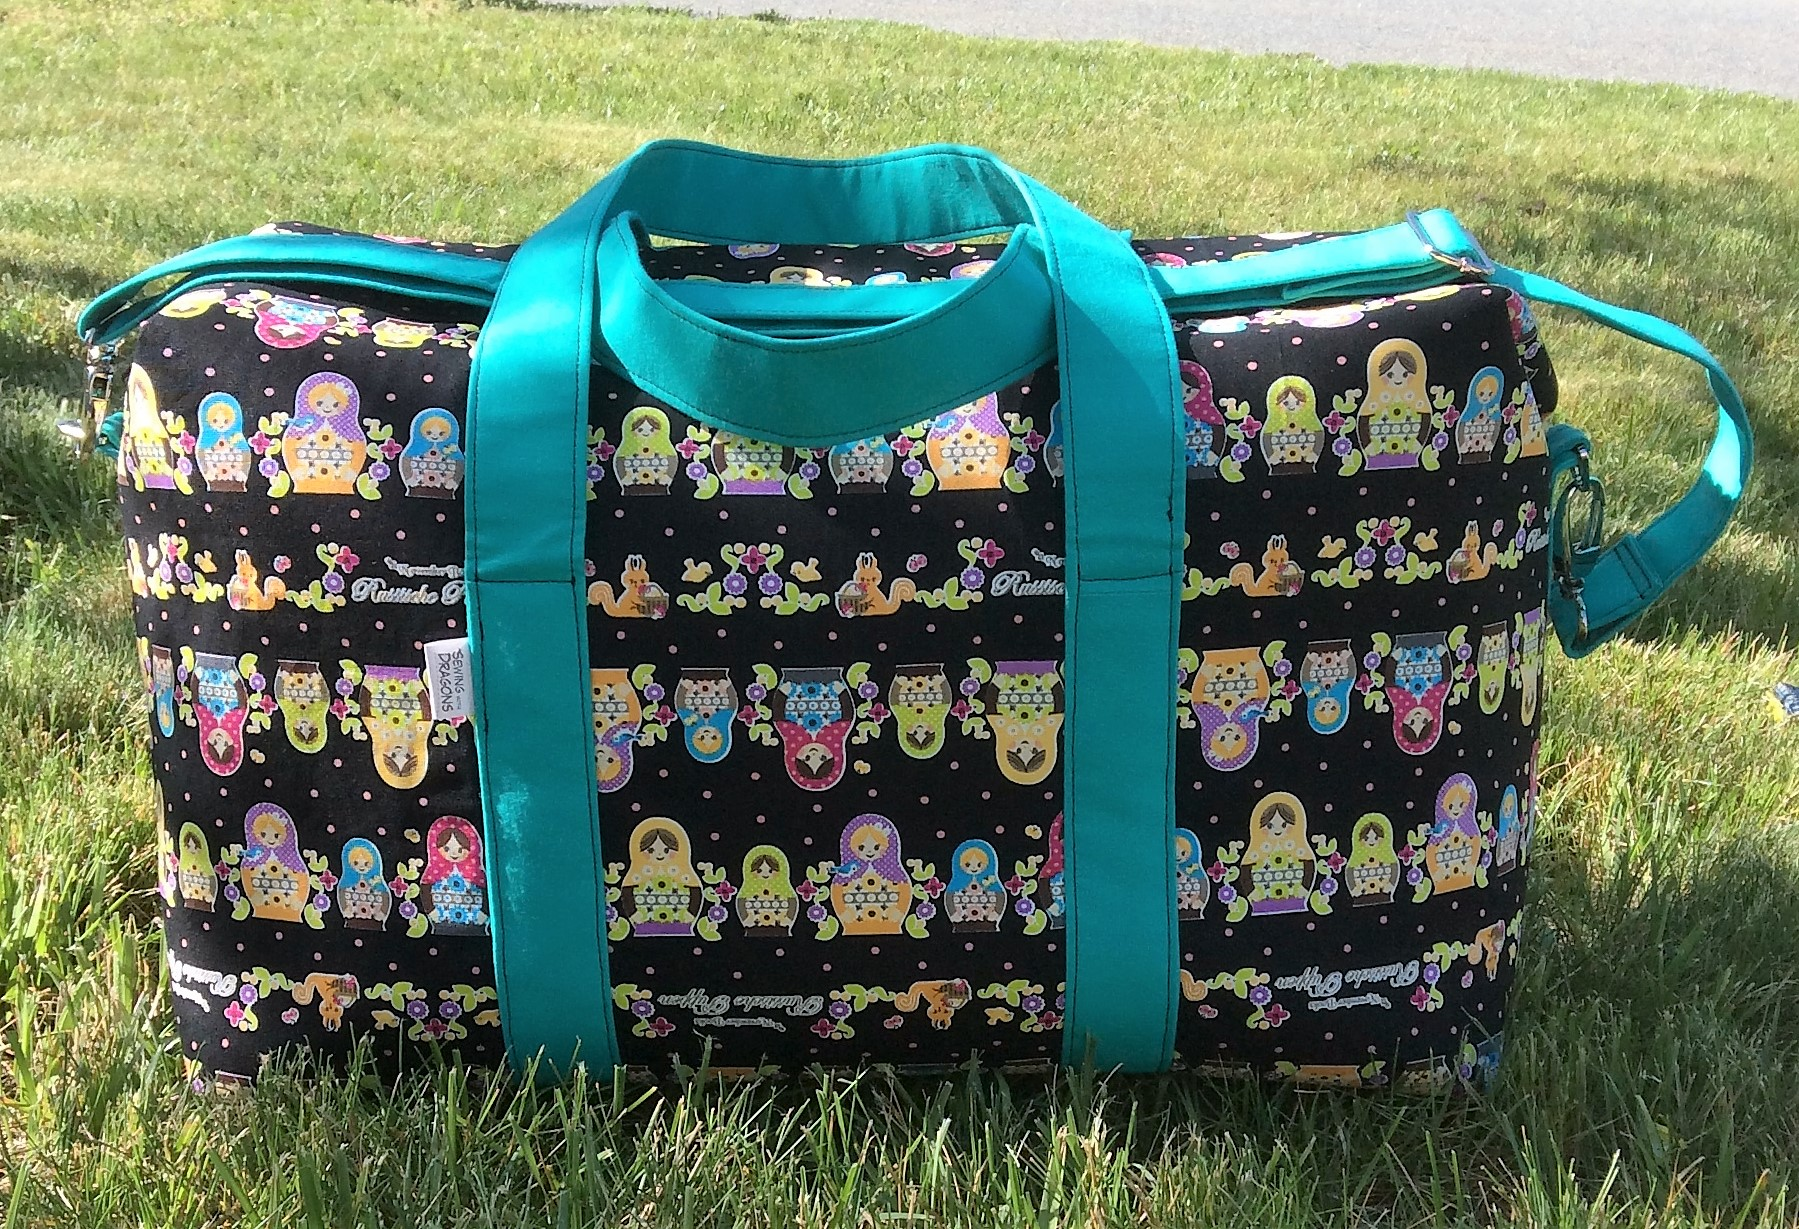 Sew Sweetness Emblem Duffle Bag, sewn by Snow of Sewing with Dragons